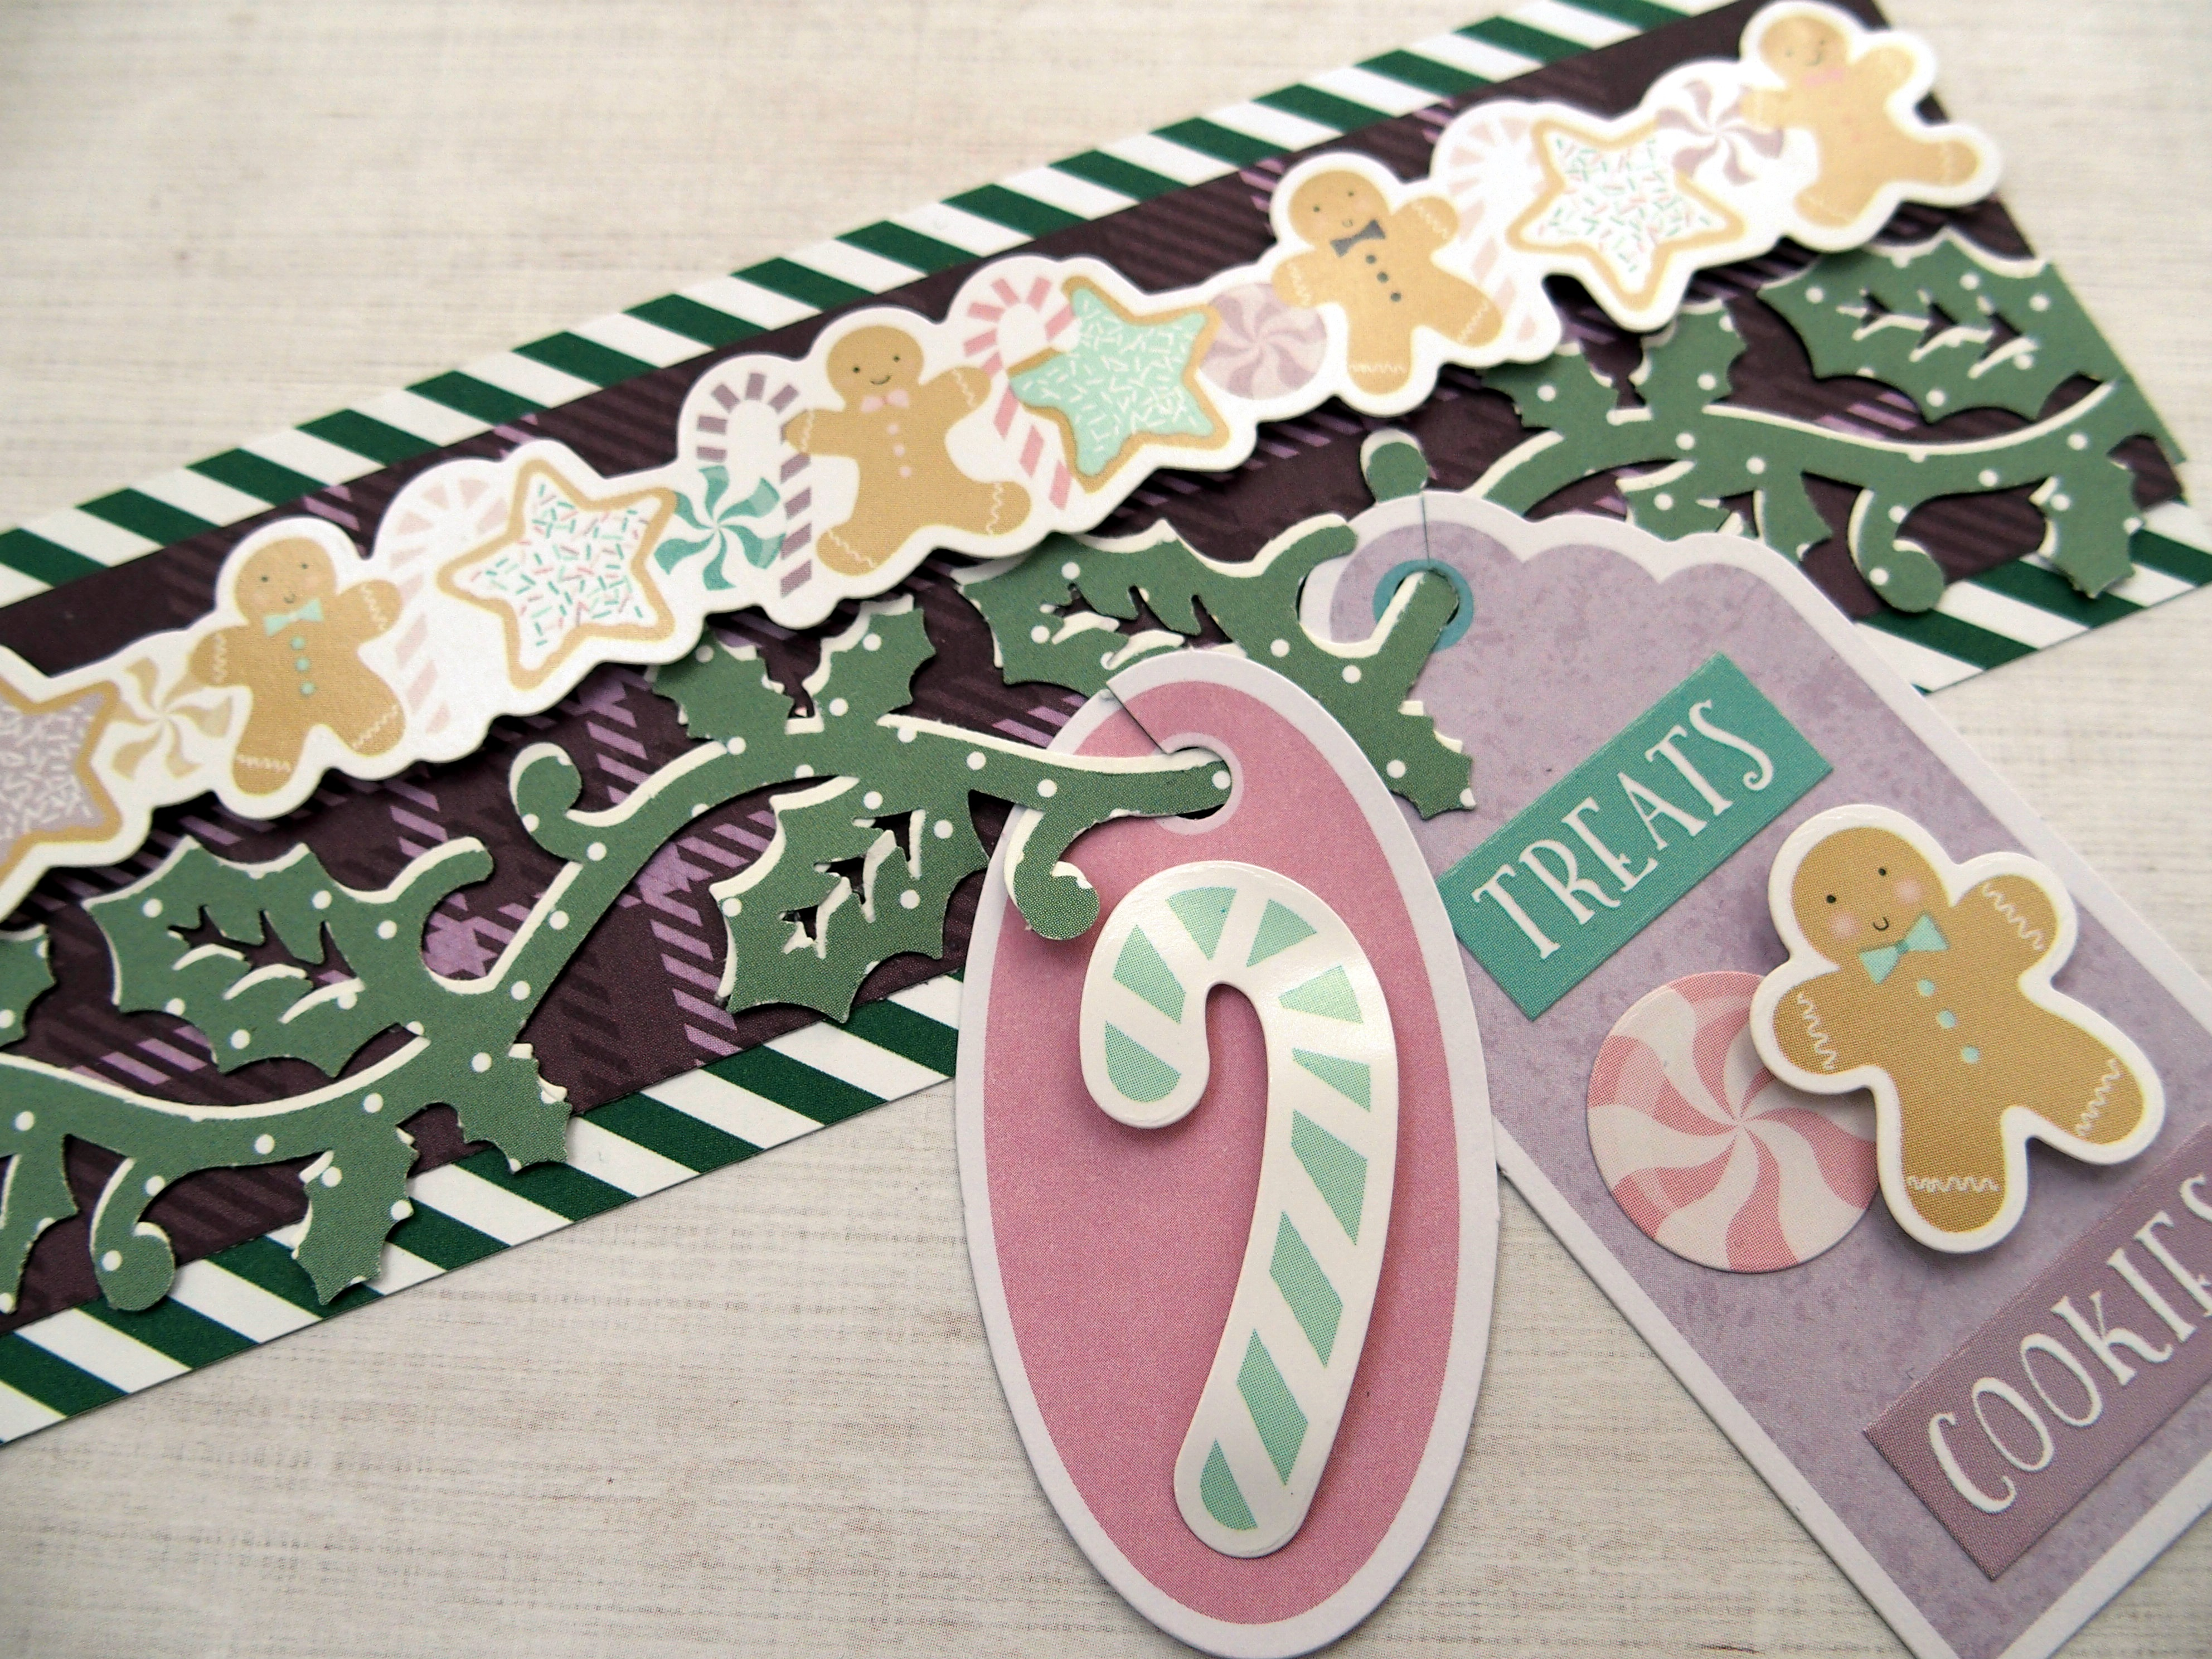 Holly-Punch-Holiday-Treats-Cookies-Scrapbook-Border-Creative-Memories